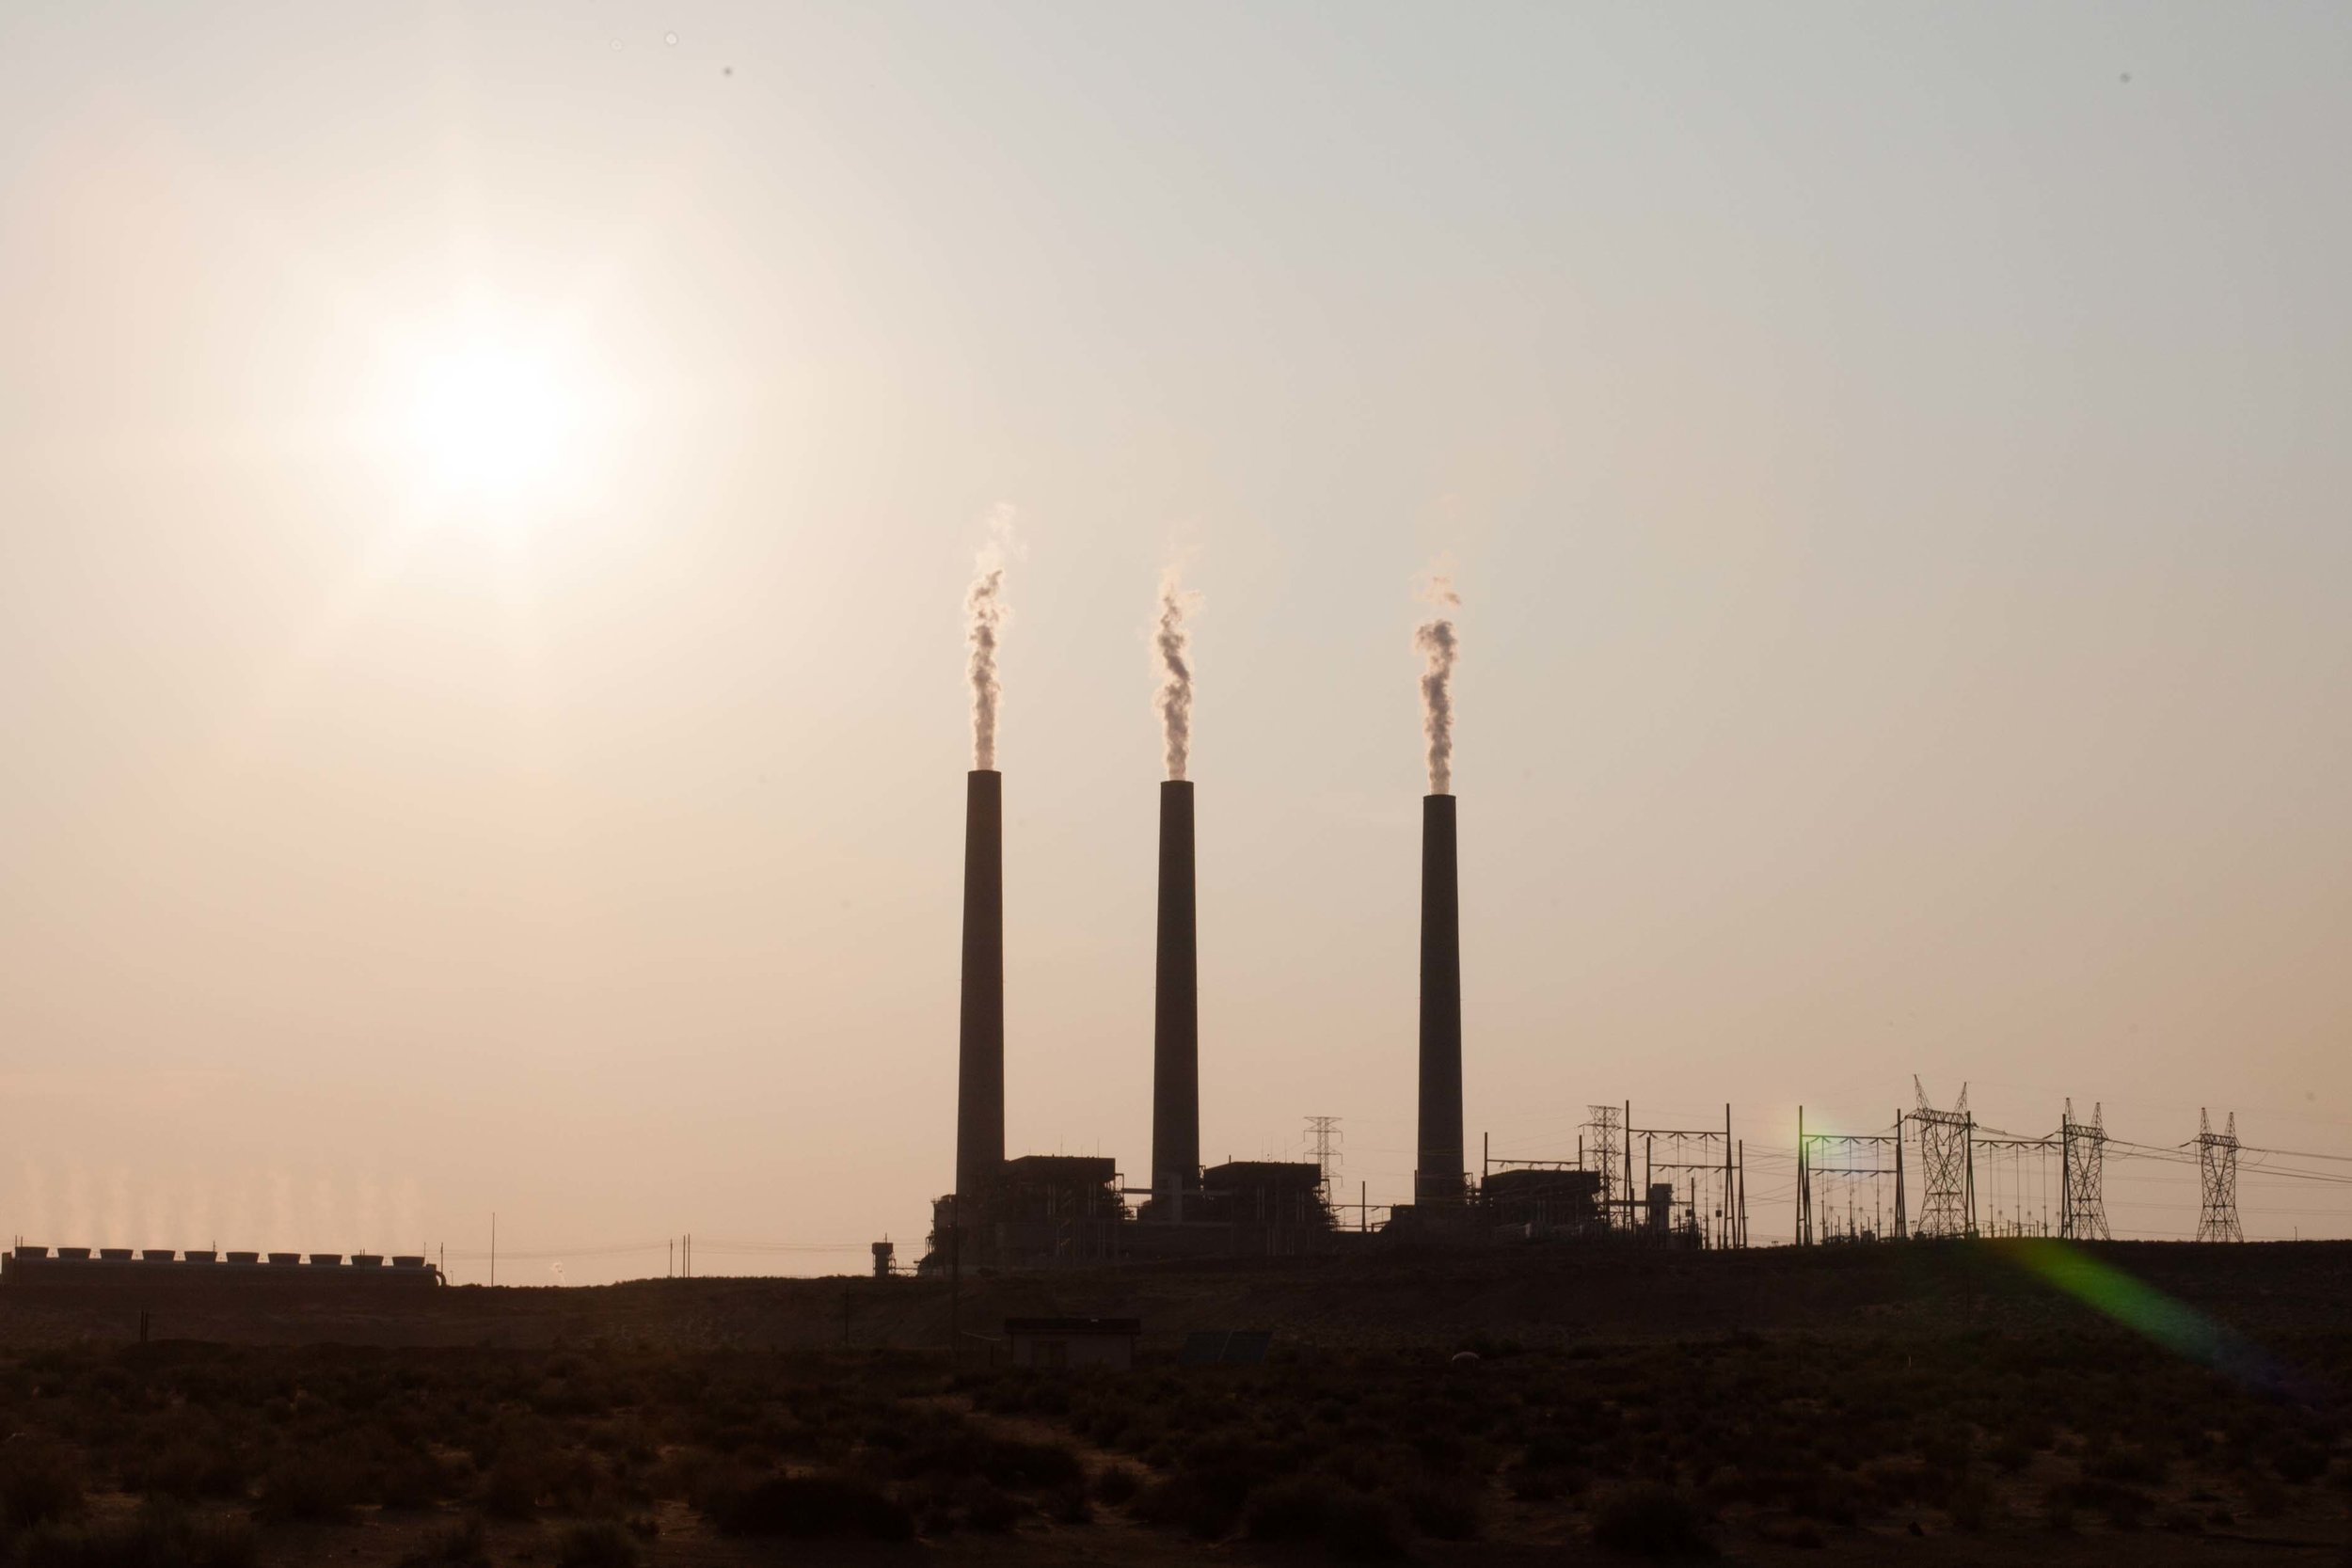 Navajo Generation Station, a power plant built to move water from the Colorado to central Arizona, burns 15 tons of coal every minute, 24 hours a day, every day of the year. It emits the third most carbon pollution of all power plants in the US.